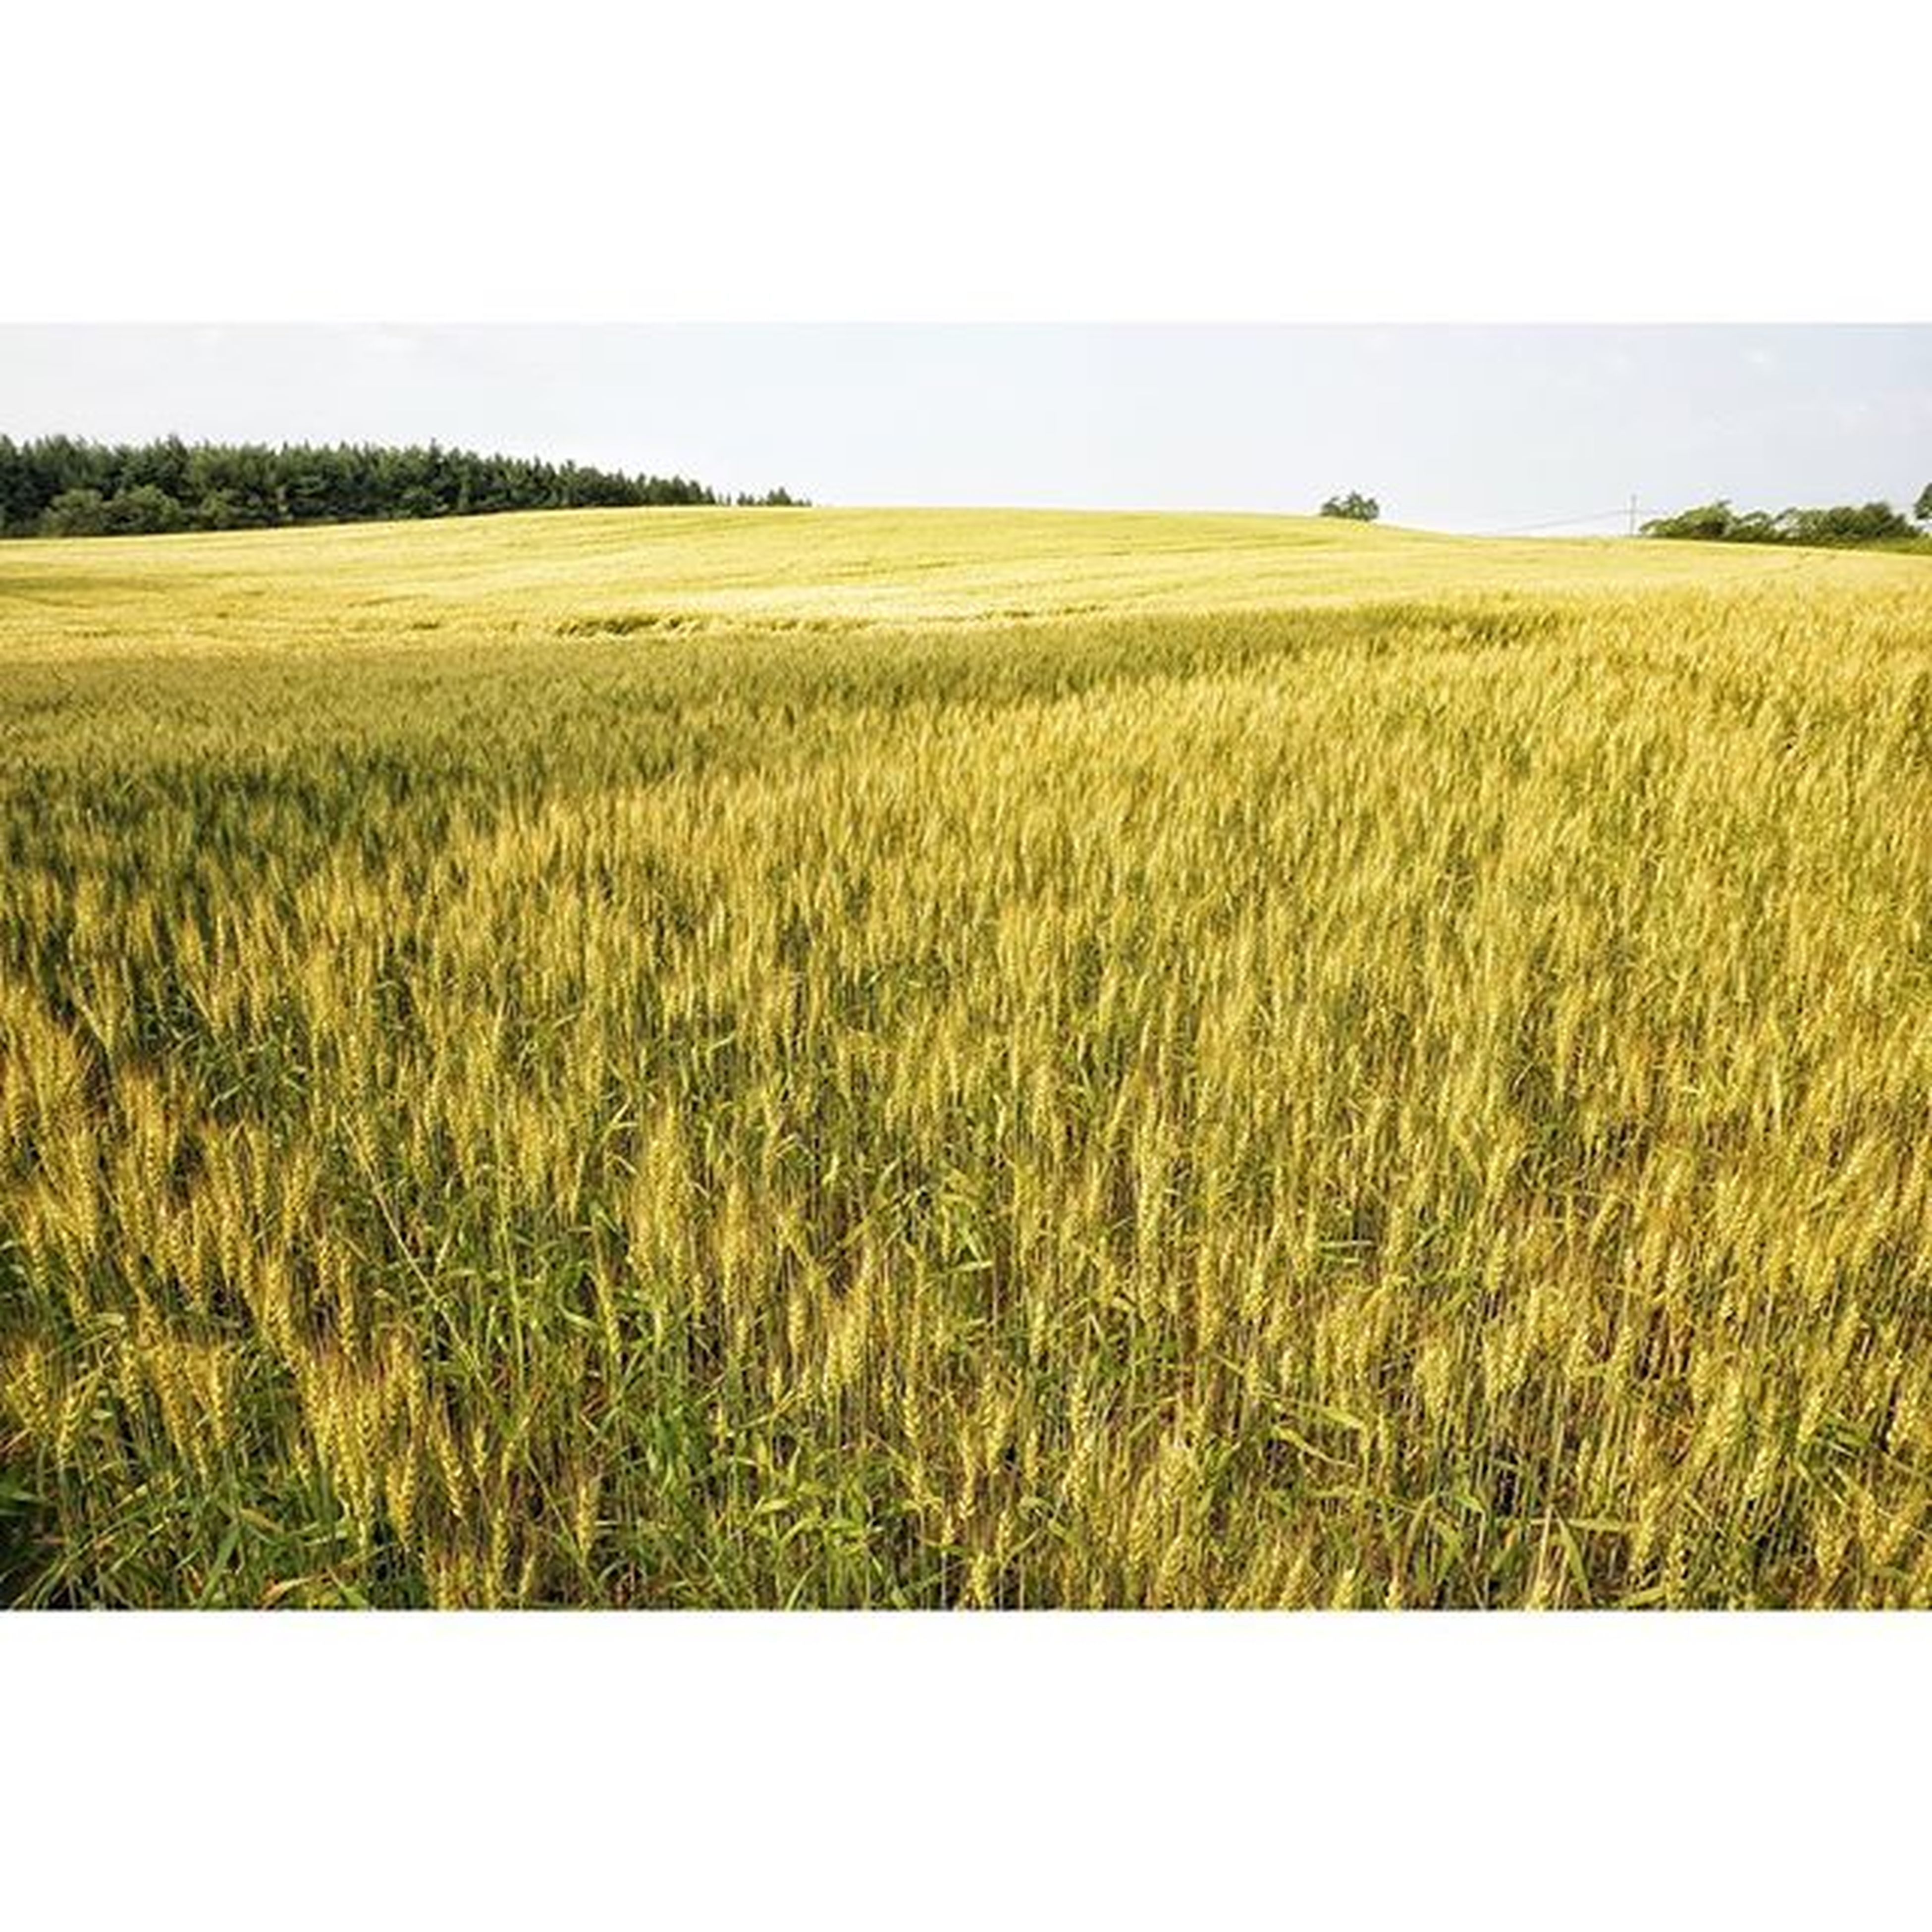 field, agriculture, rural scene, growth, tranquil scene, landscape, tranquility, crop, beauty in nature, clear sky, scenics, nature, grass, yellow, farm, plant, cultivated land, horizon over land, cereal plant, copy space